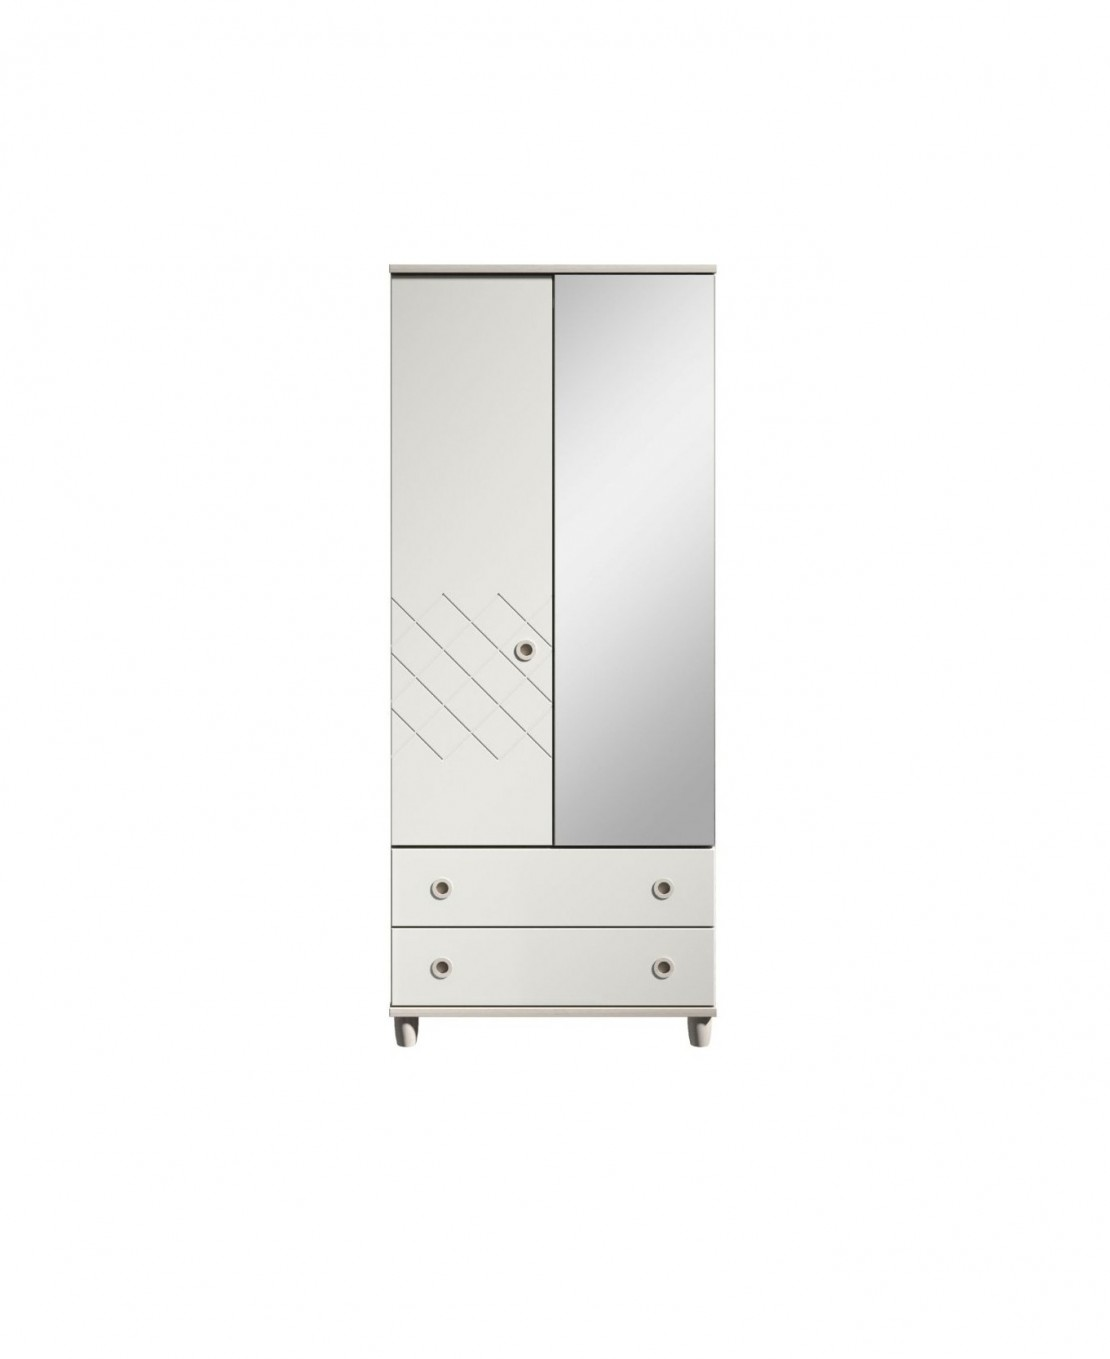 /_images/product-photos/kt-furniture-geo-2-door-mirrored-gents-robe-matt-white-with-elm-carcase-a.jpg